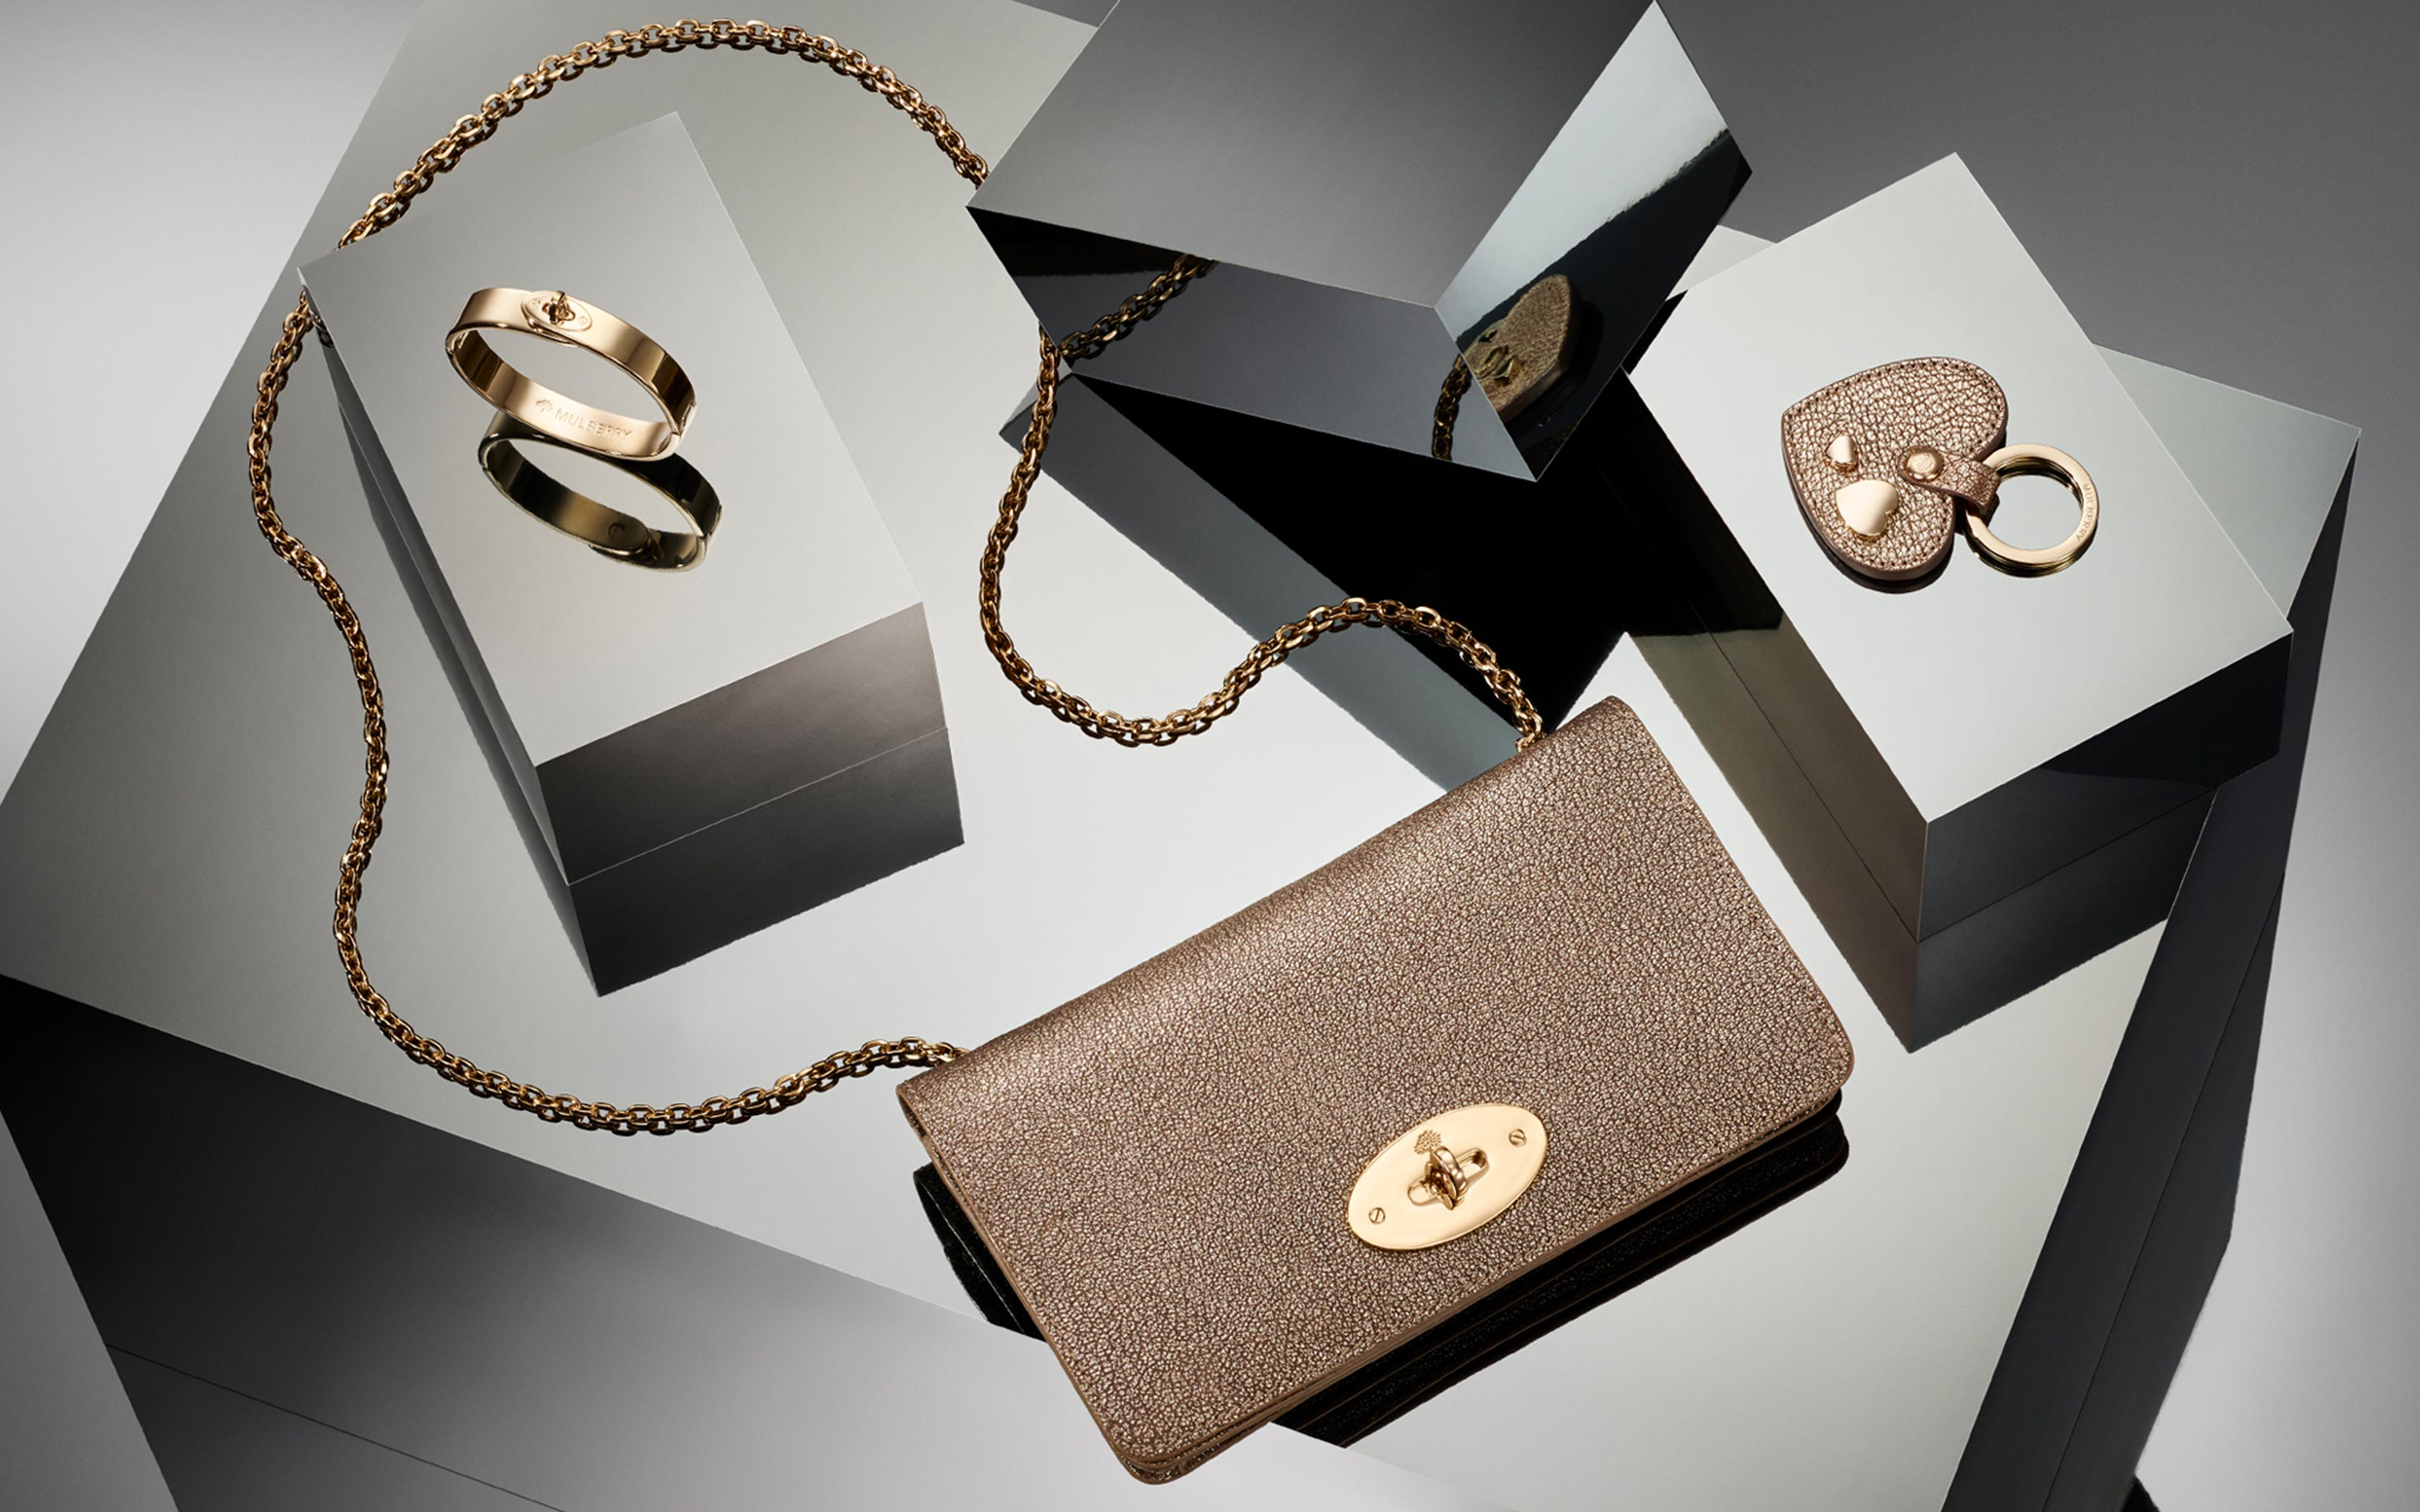 creative commercial shot of handbags and accessories in a light grey reflecting scene